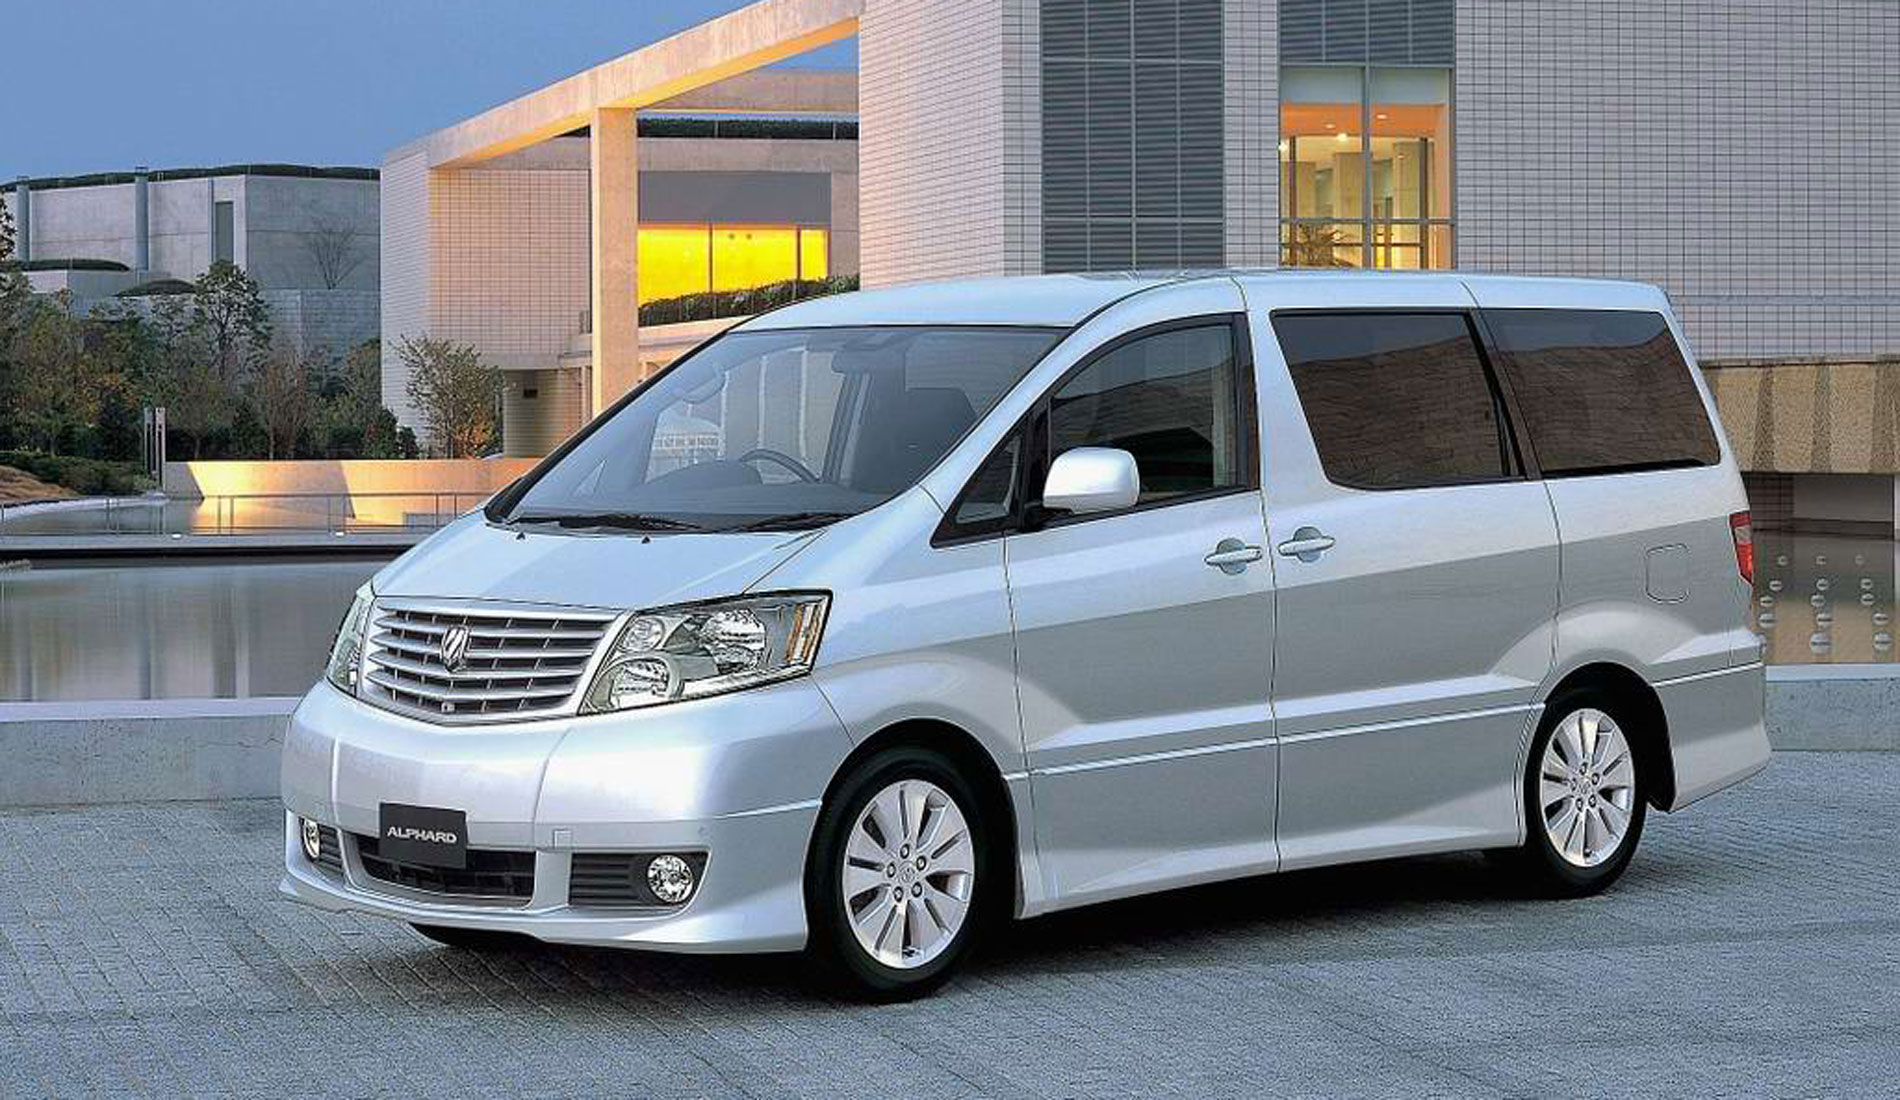 Toyota Alphard Hire - Things To Do in Bali Tours Activities